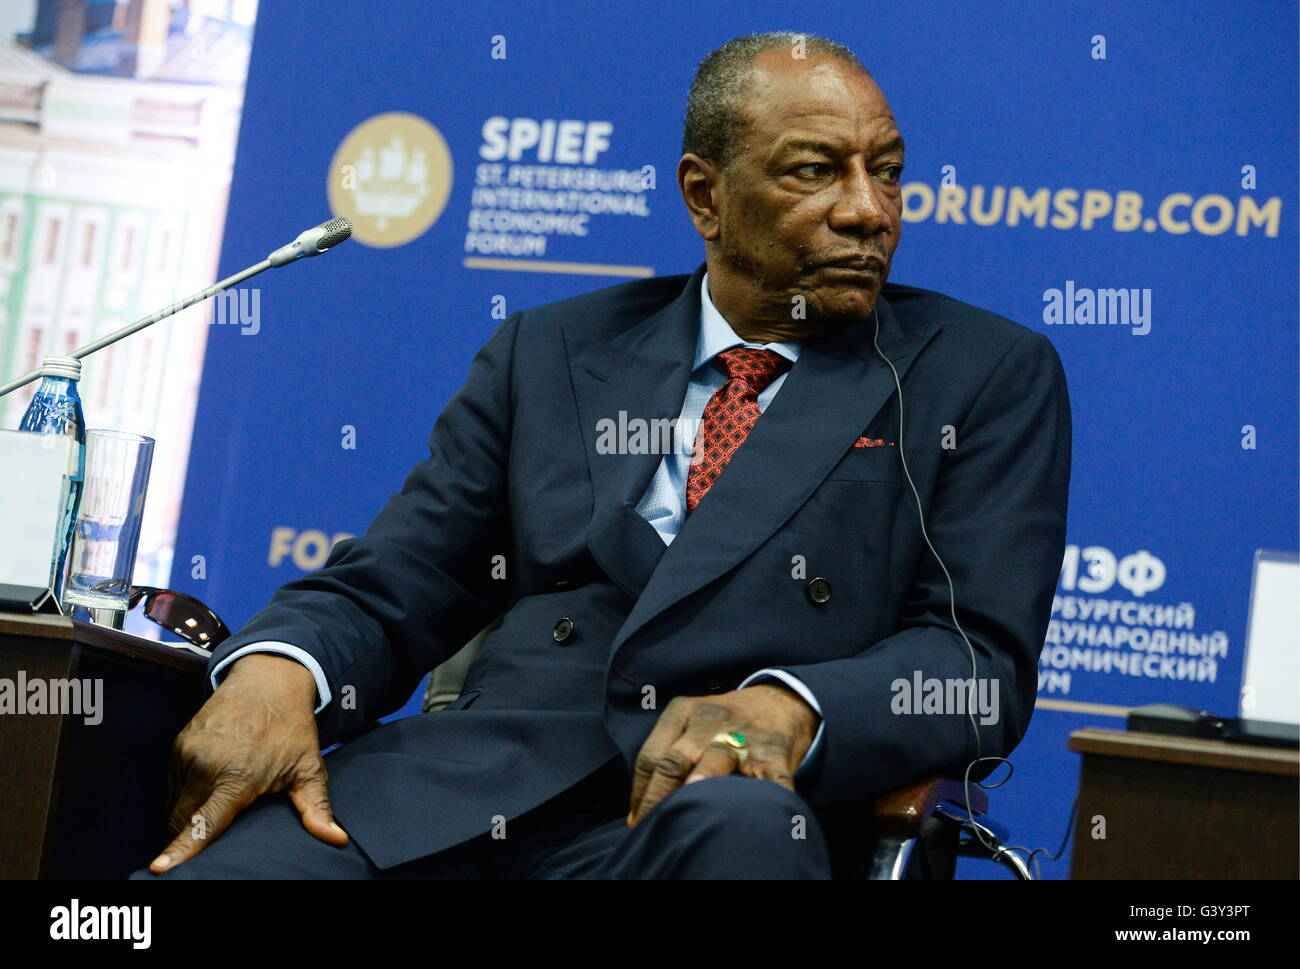 St Petersburg, Russia. 16th June, 2016. President Alpha Conde of the Republic of Guinea at a panel session titled - Stock Image